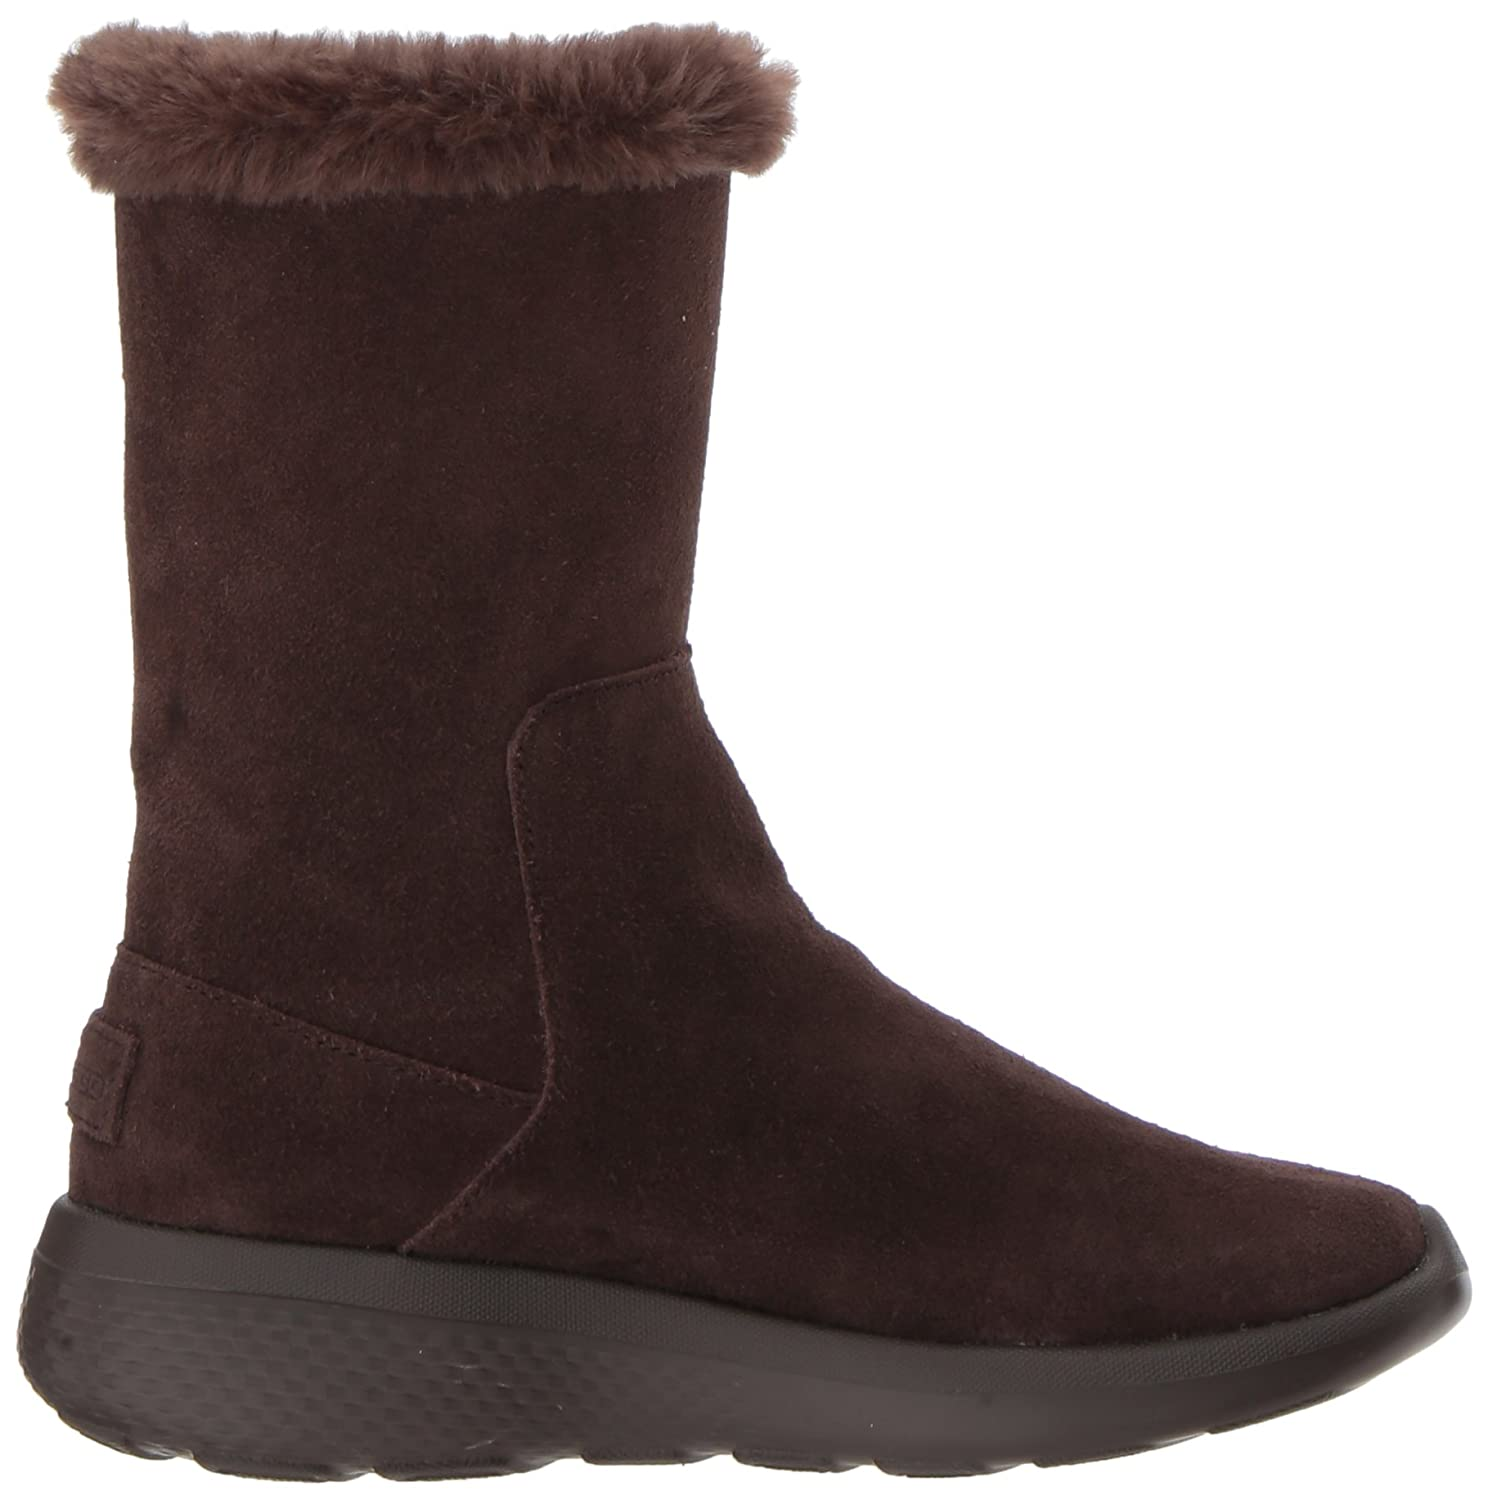 Skechers Women's B06XB6XSVN on-The-Go City 2-14620 Winter Boot B06XB6XSVN Women's 11 B(M) US|Chocolate 4714aa